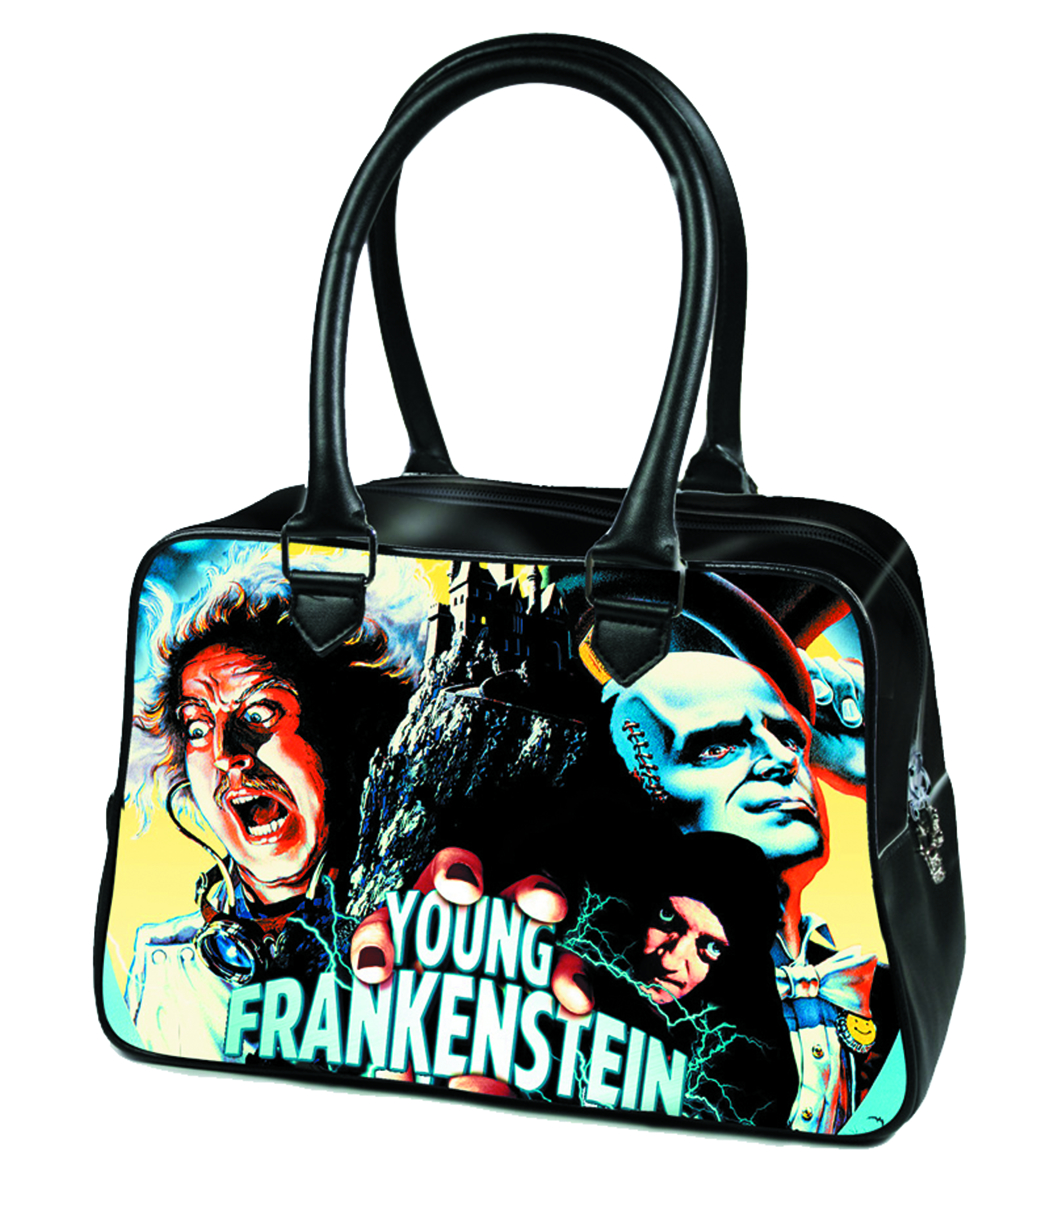 YOUNG FRANKENSTEIN HANDBAG